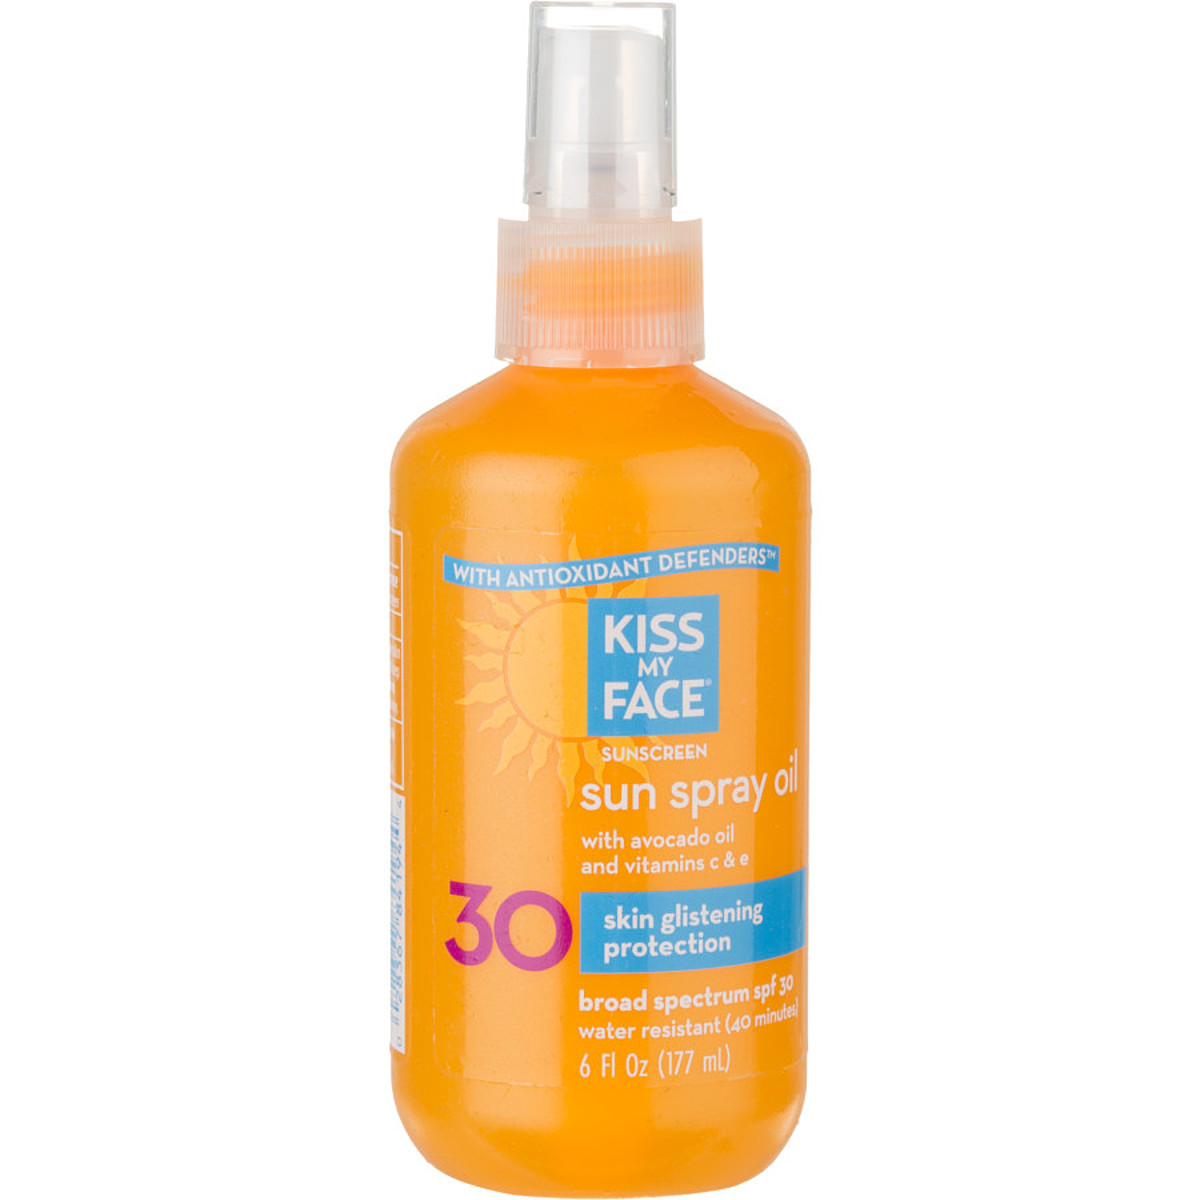 Kiss My Face Sun Spray SPF30